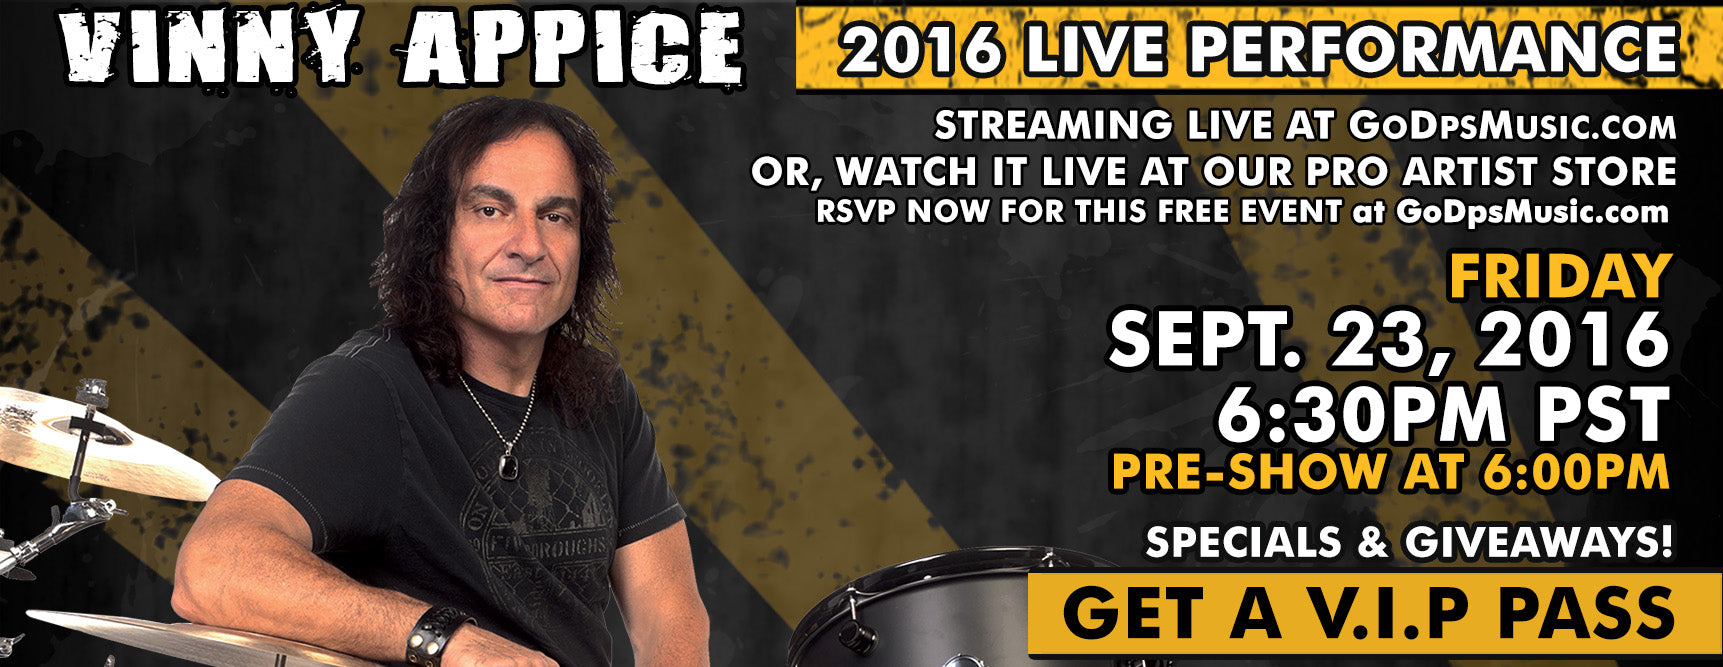 Vinny Appice 2016 Event